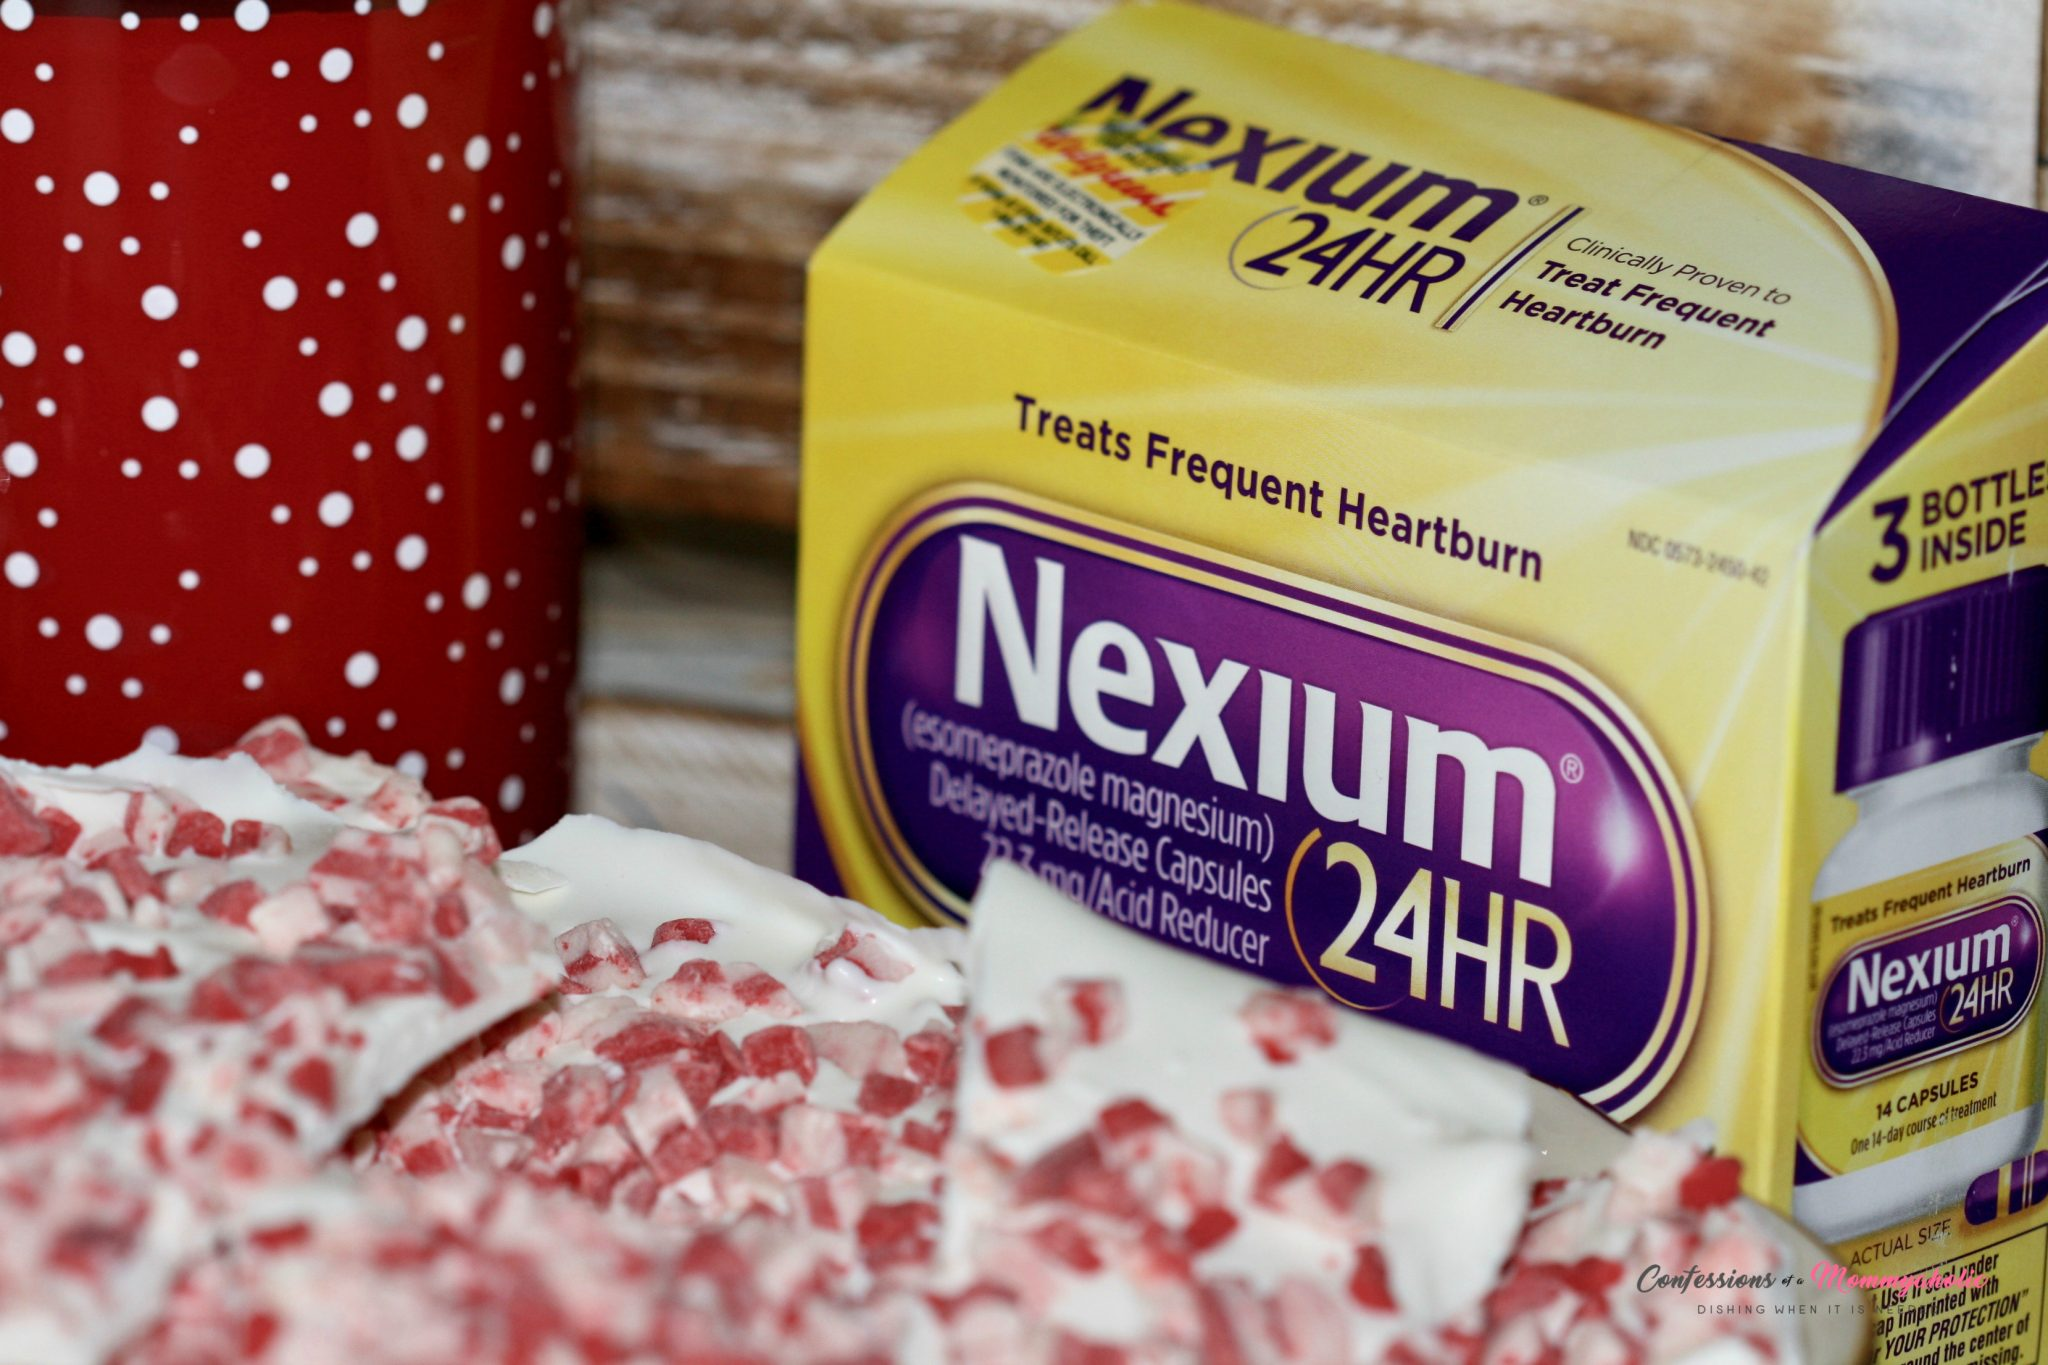 white-chocolate-peppermint-bark-and-nexium-capsules-box